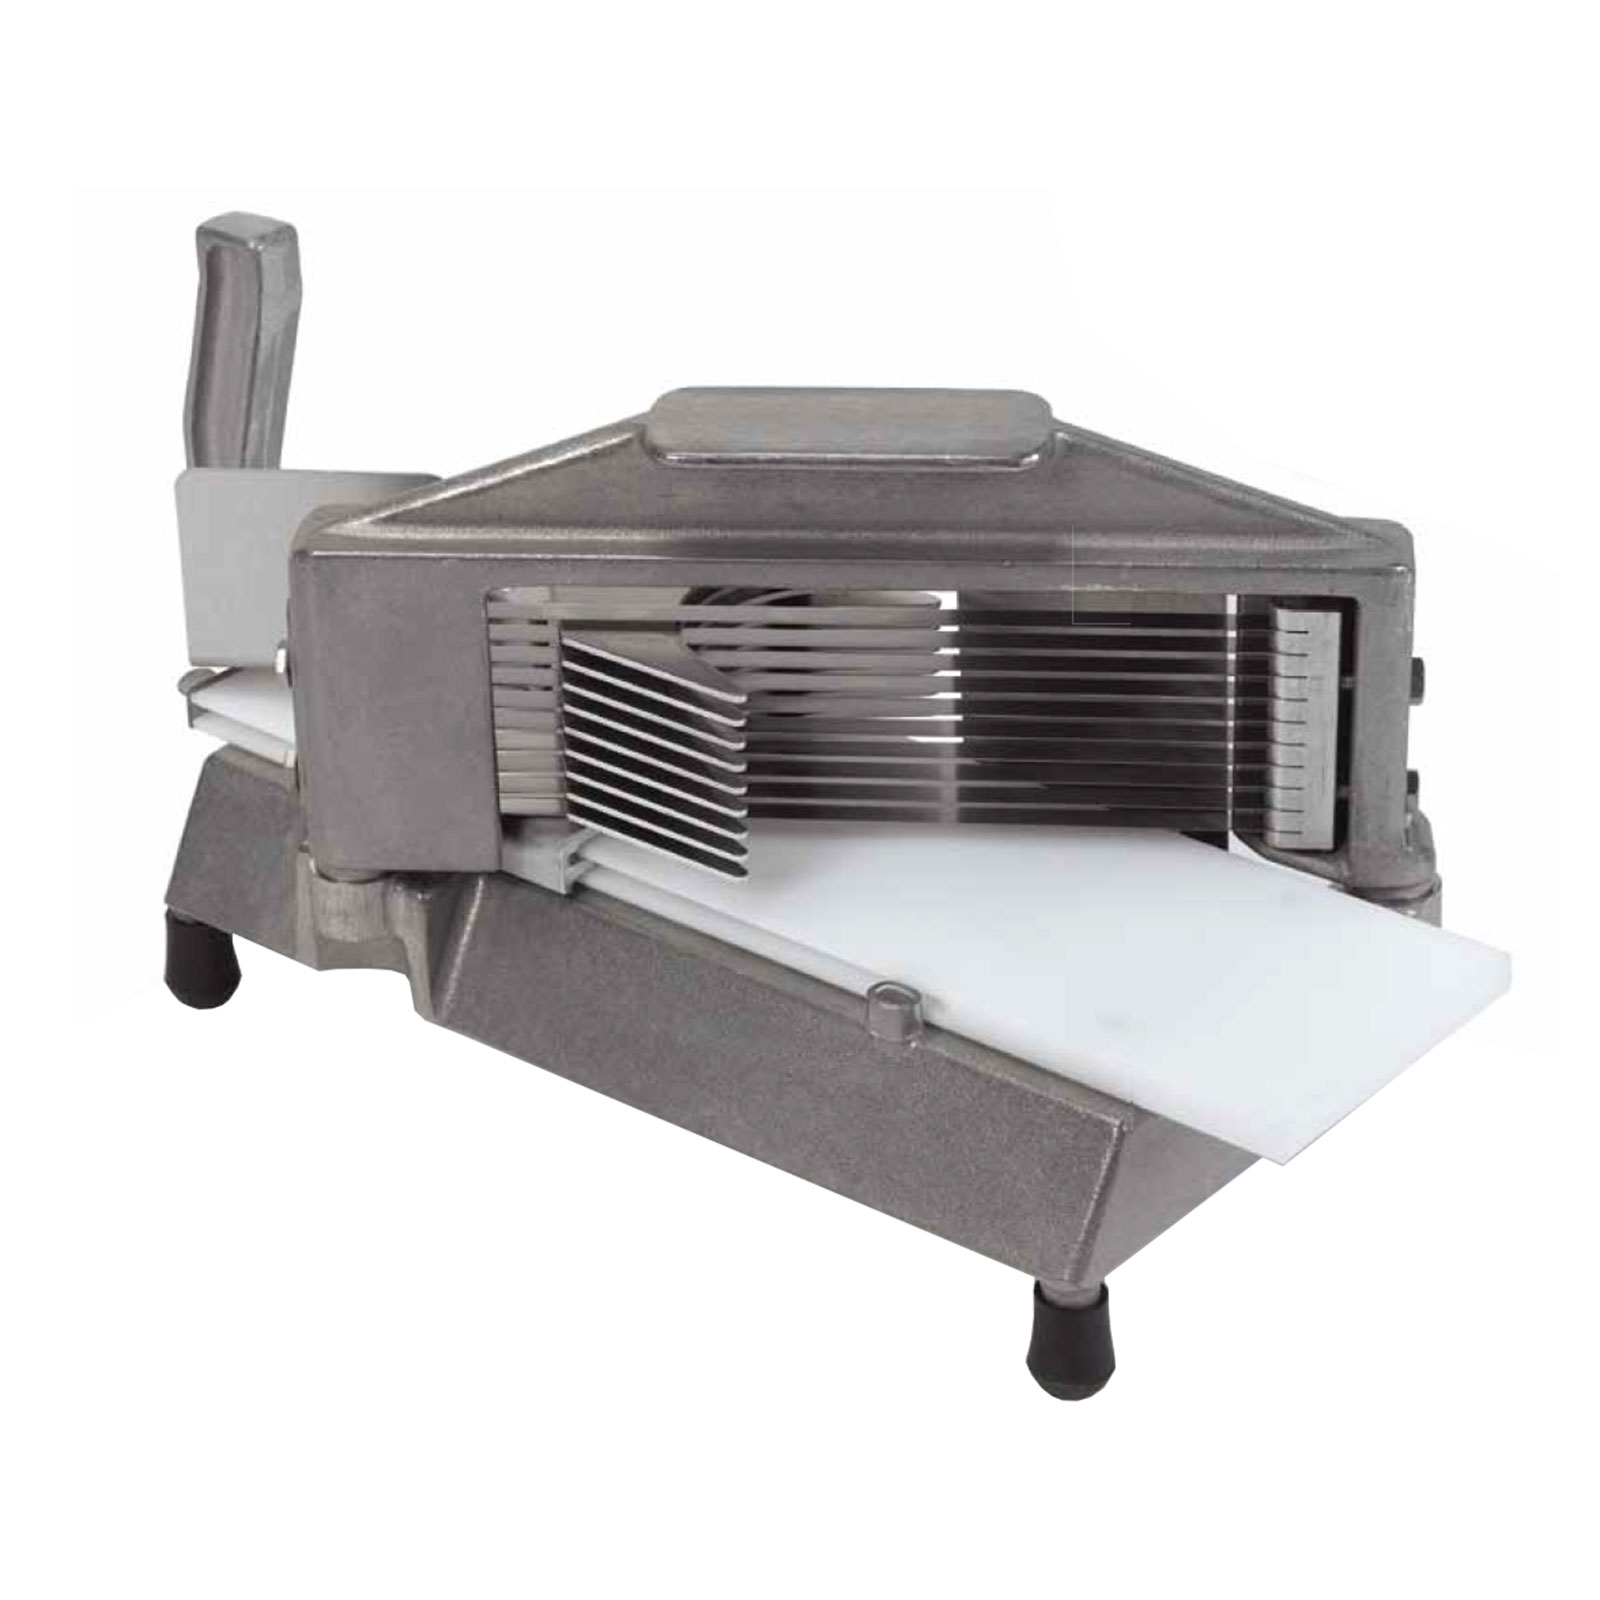 Nemco Food Equipment 55600-1 slicer, tomato